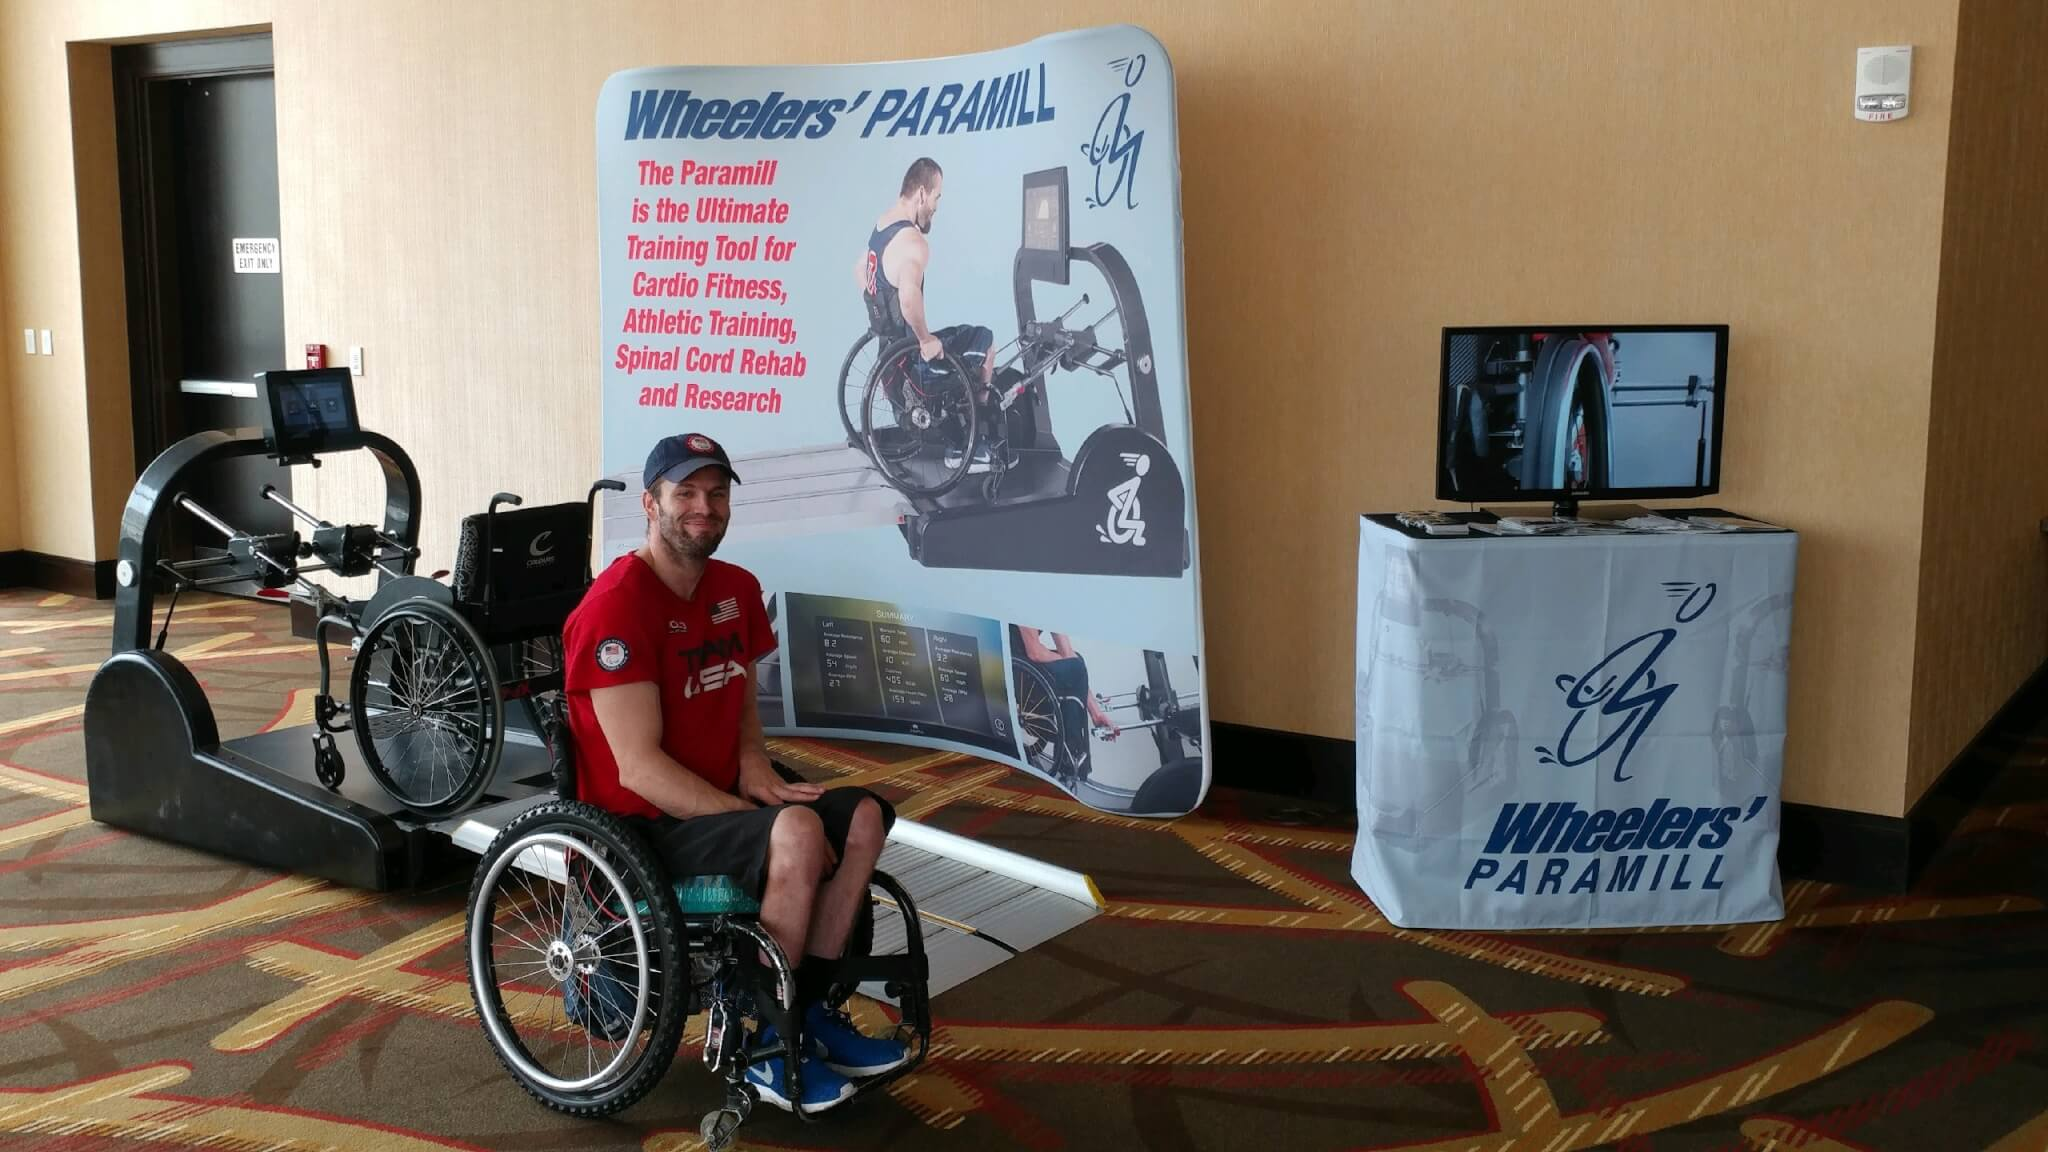 Wheelers Paramill Josh Wheeler PUSHLiving.com  - An Insider's Look Into The Progress of ADAPTIVE SPORTS Within our Communities